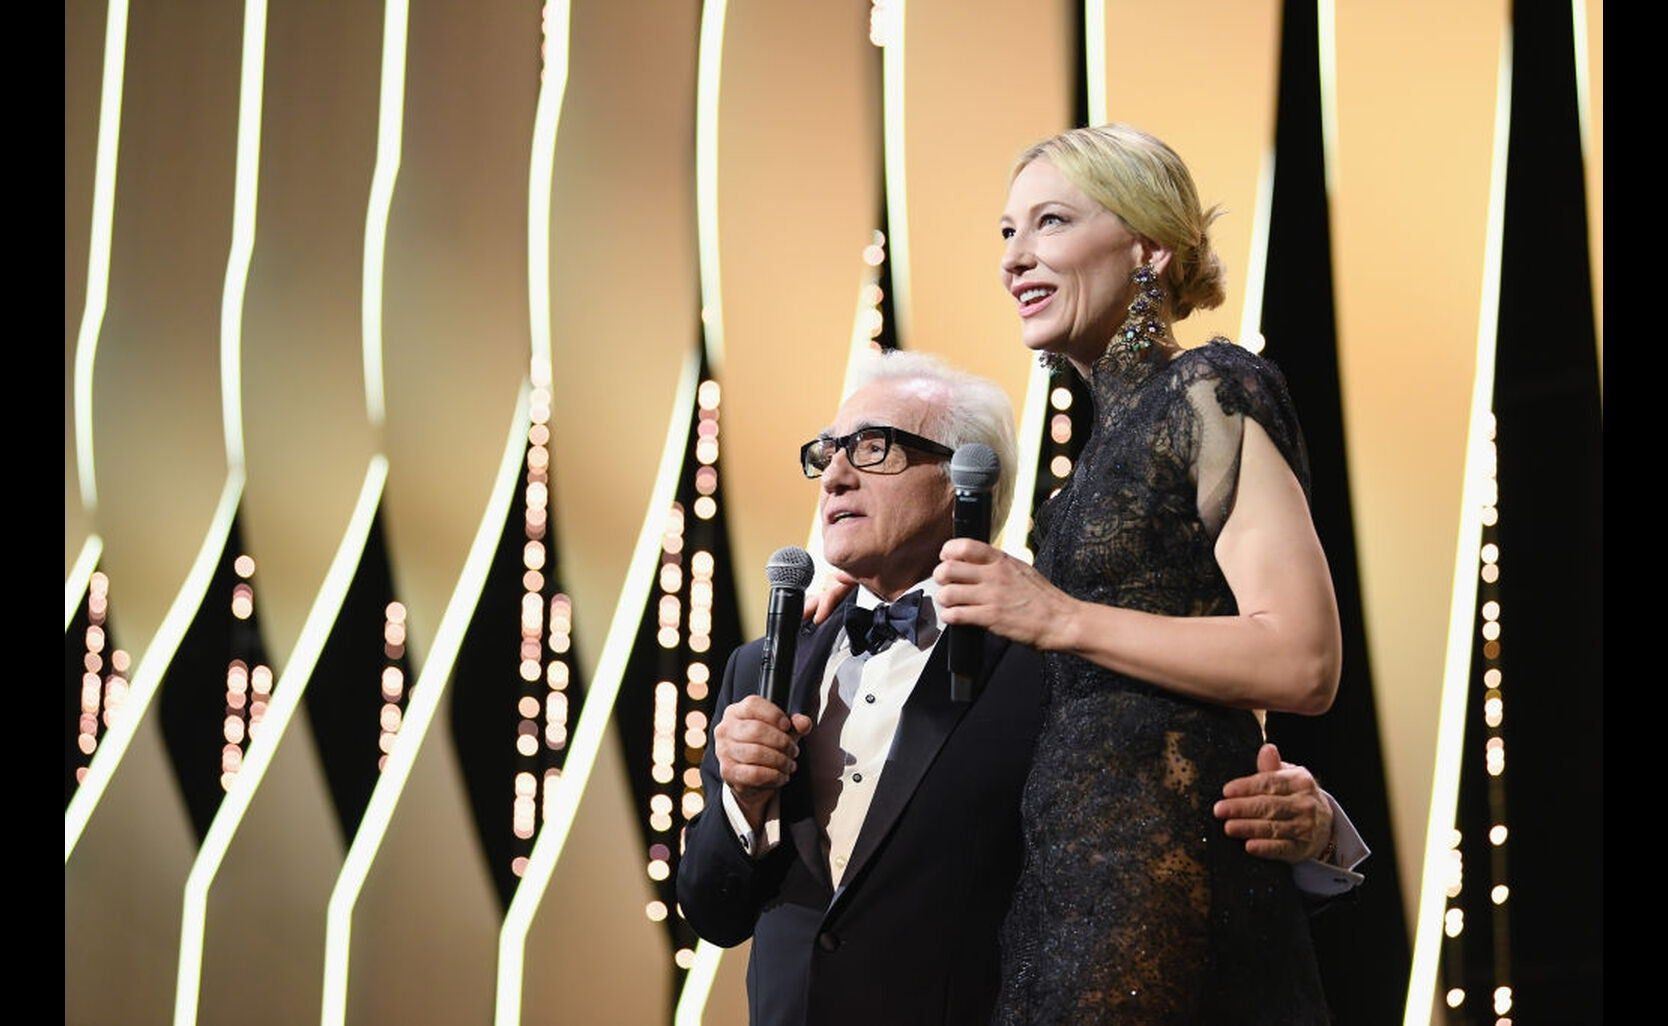 Martin Scorsese and Cate Blanchett at the 2018 Cannes Film festival